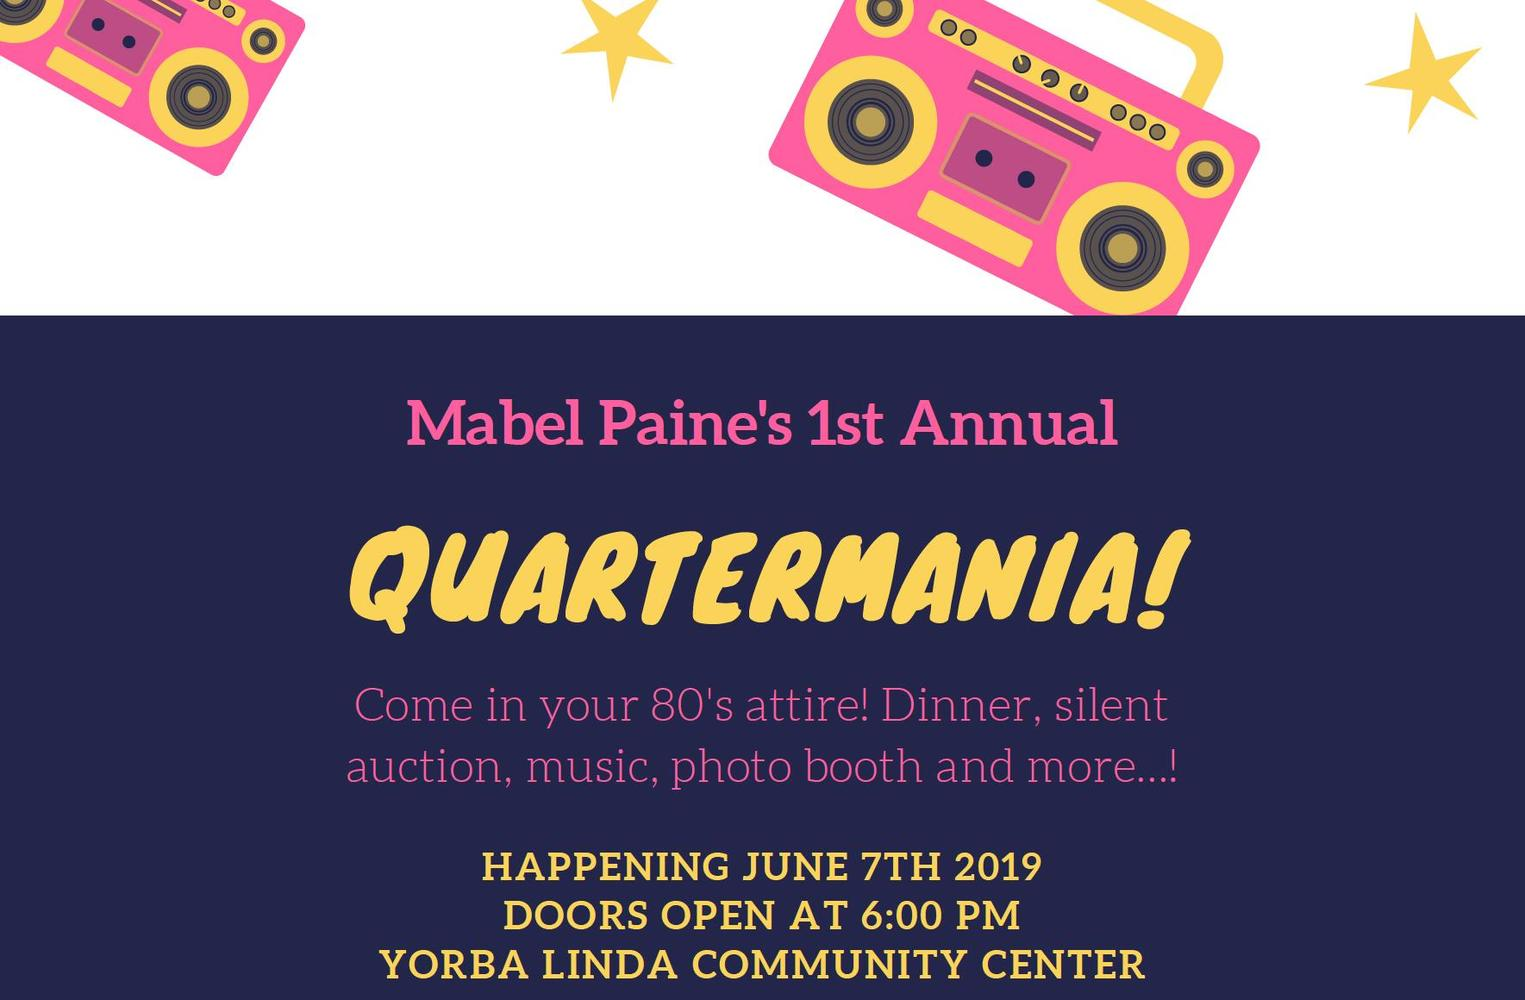 1st Annual Quartermania on June 7